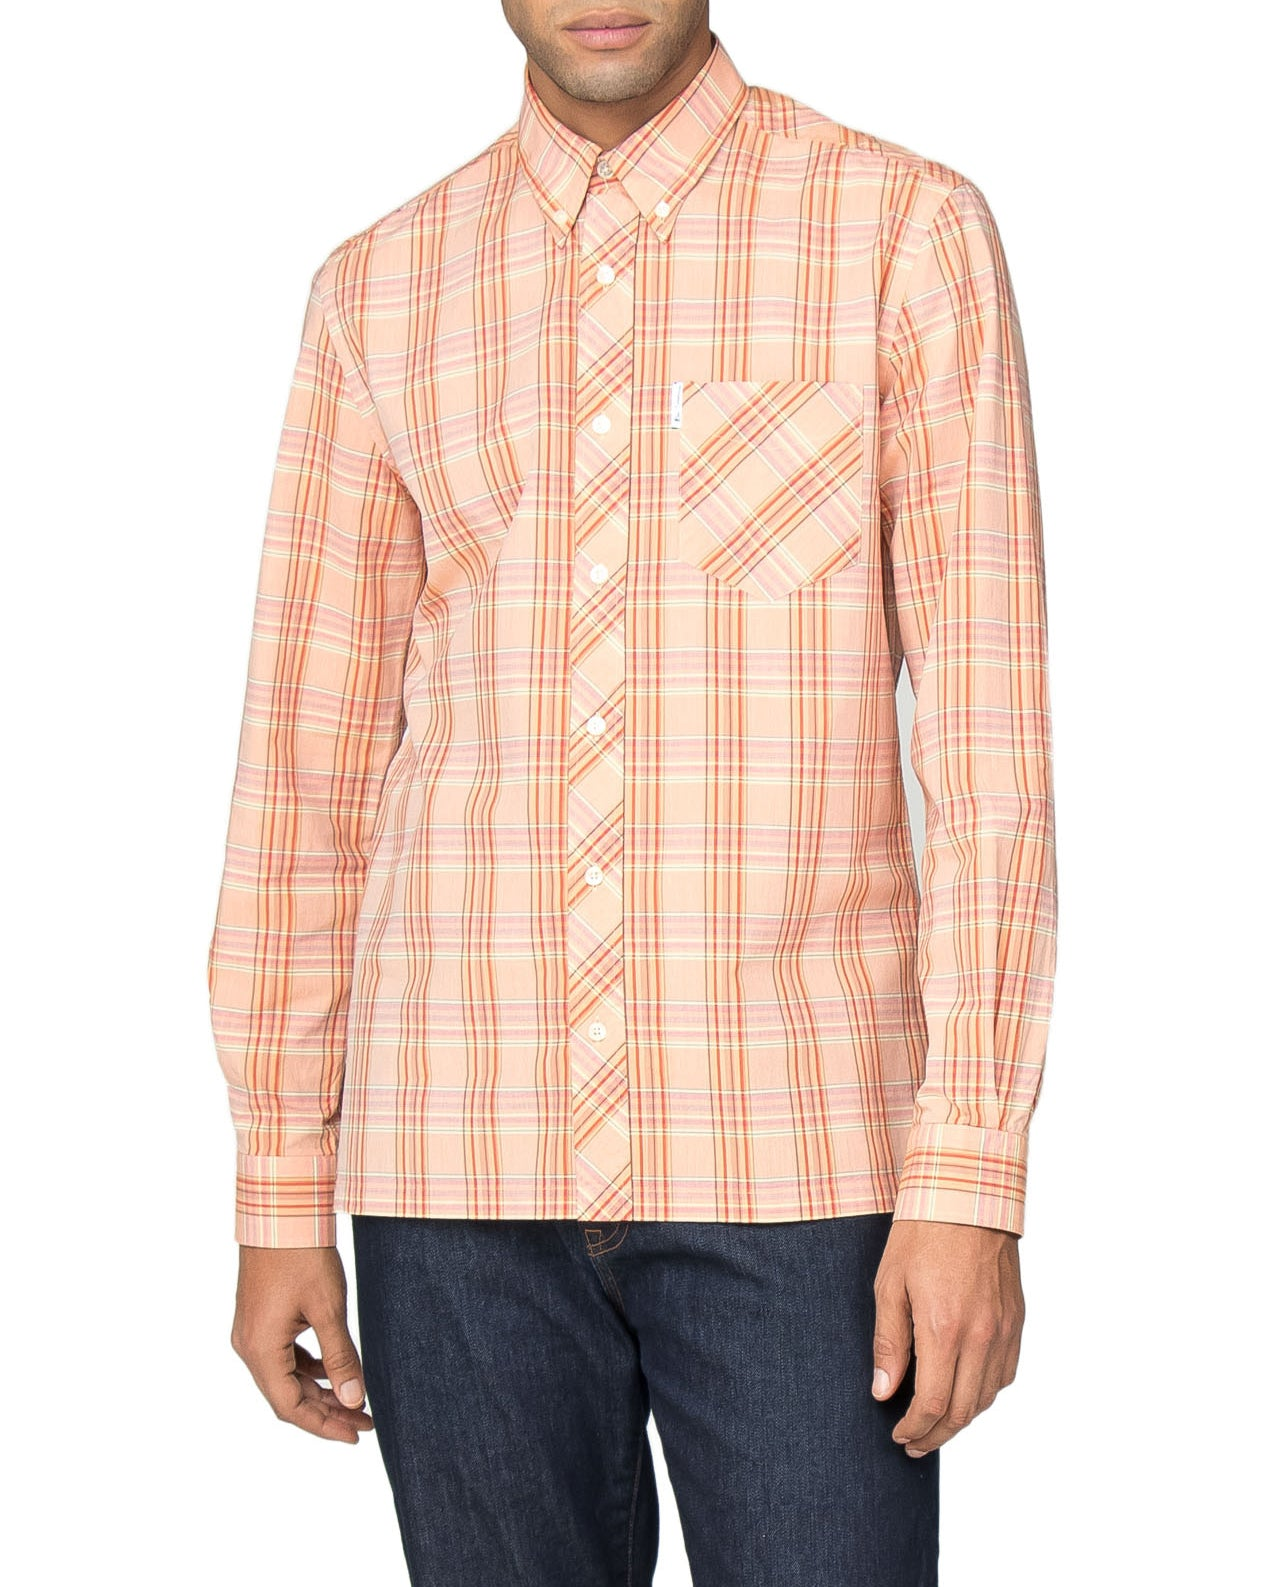 Long-Sleeve Archive Cambridge Shirt - Orange